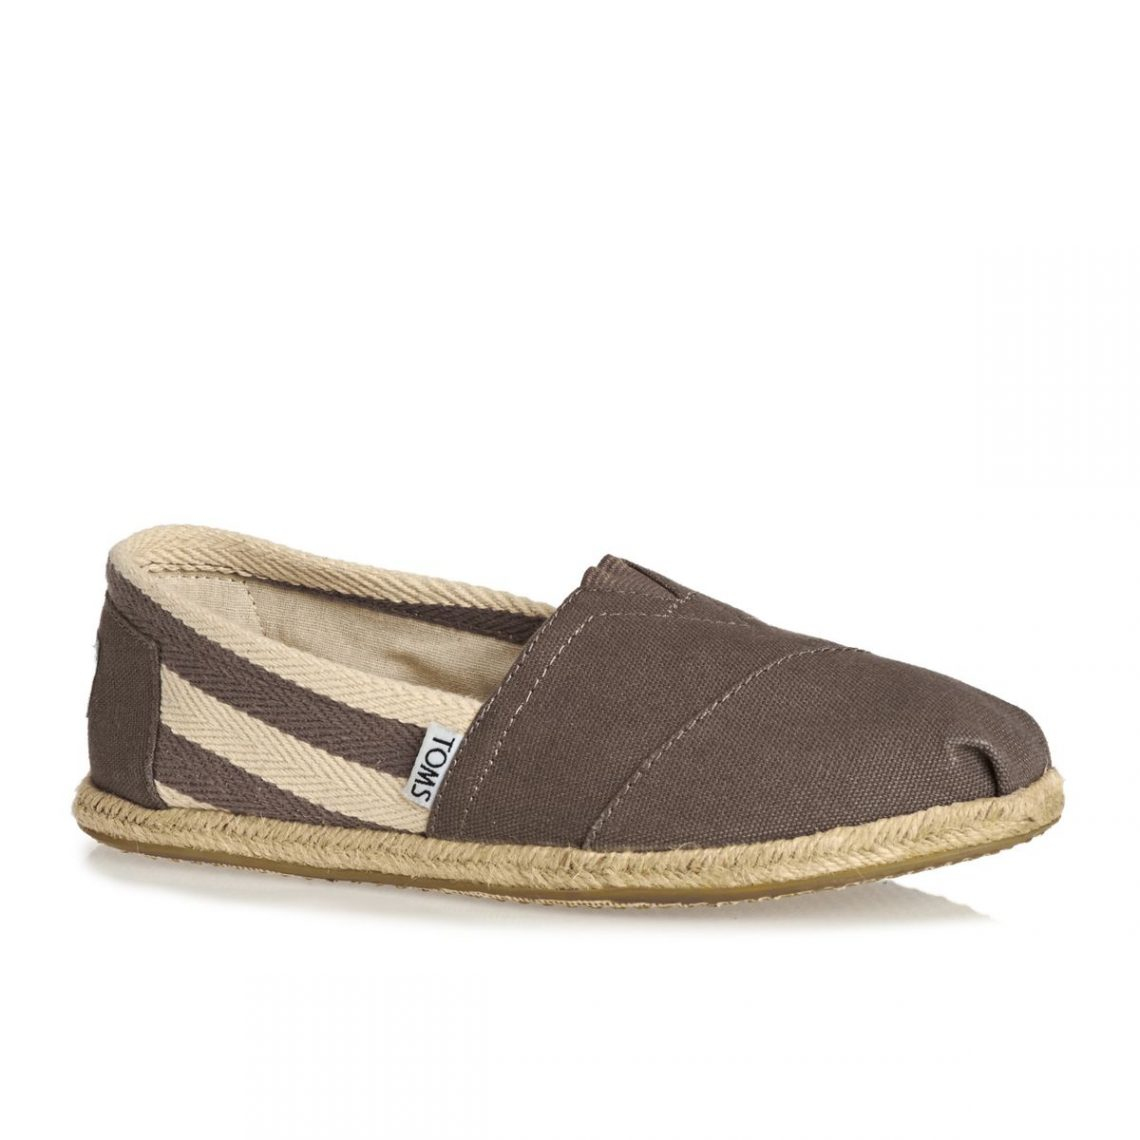 07fa3df9131 TOMS Shoes - MILLIONPIECE